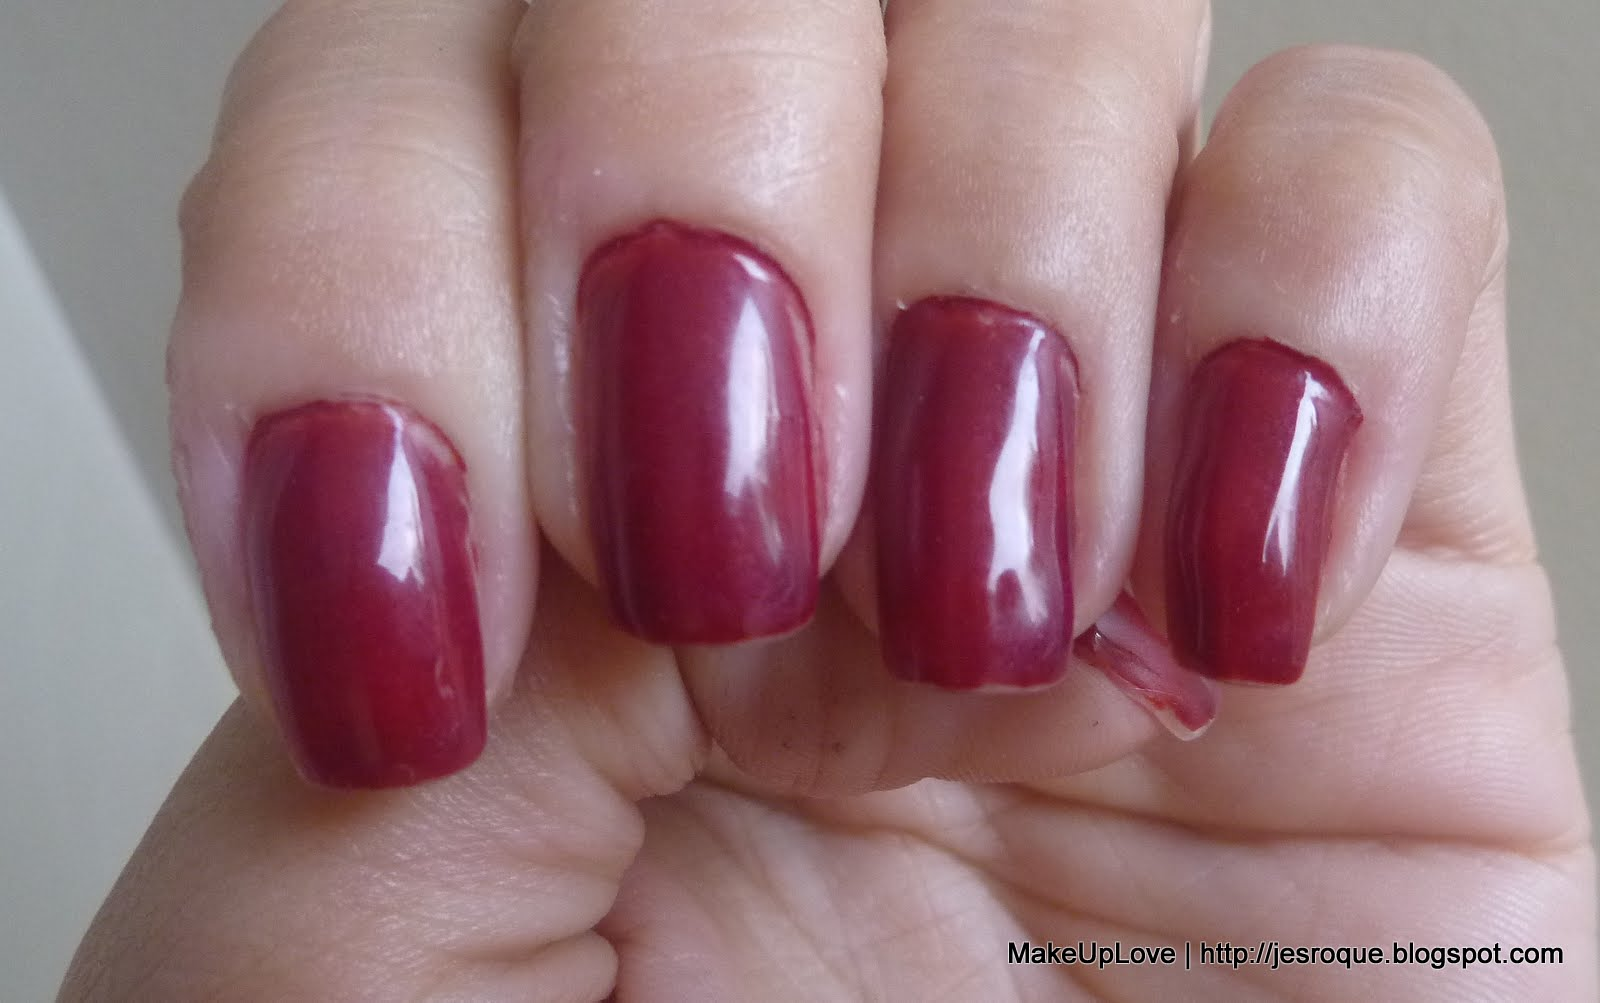 MakeUpLove | Beauty, Fashion and Lifestyle: Jennifer Lynn Gel Polish